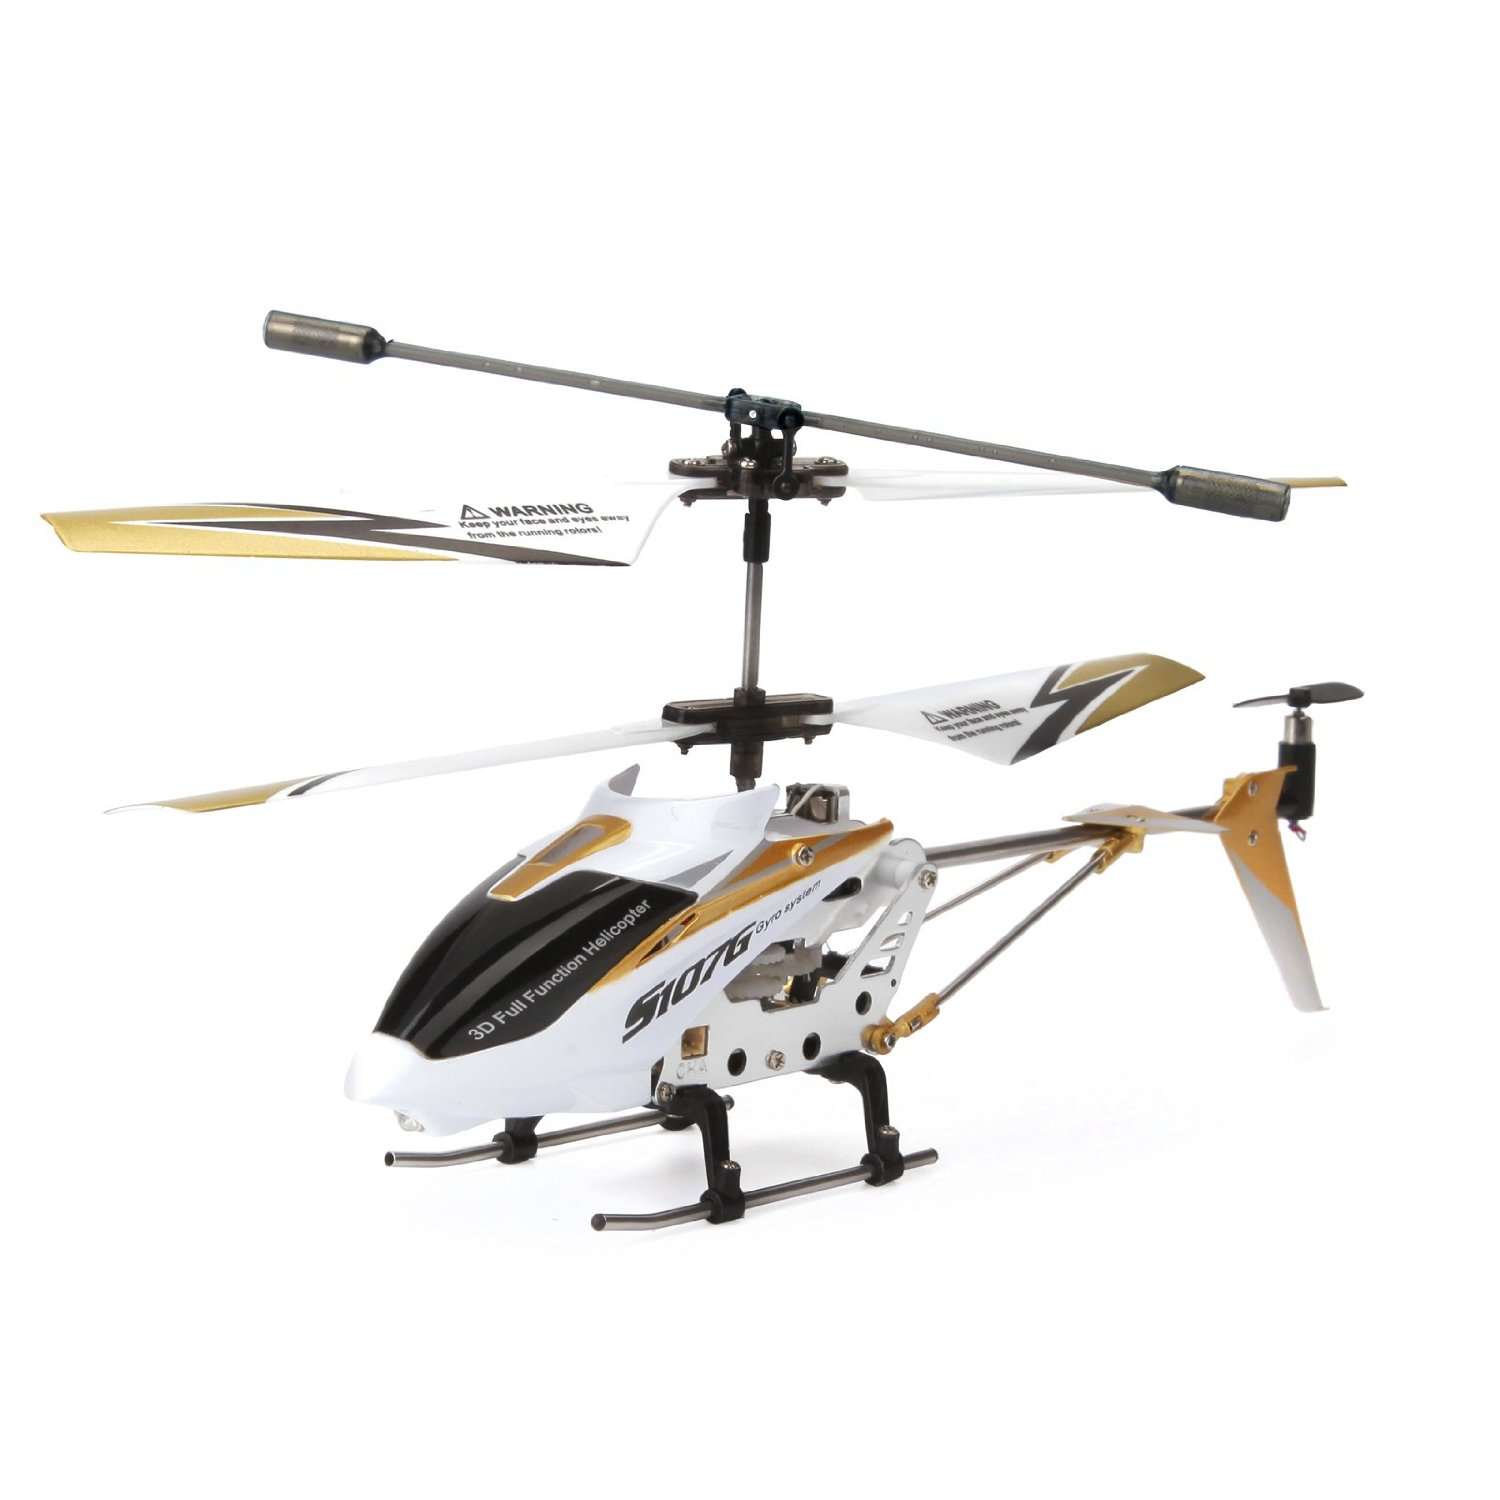 s109g helicopter with Syma S107s107g 3 5 Channel Rc Helicopter With Gyro on 121273883620 together with Wonderful High Quality Smart Smart Space Dance Robot Electronic Walking Walking Toys With Music Light Gift For Kids Astronaut Play To Child also 2064005 Authentic Syma S107 3 Channel Mini Gyro Metal furthermore Syma S109g 3 5 Channel Rc Helicopter With Gyro together with Syma S107s107g 3 5 Channel Rc Helicopter With Gyro.